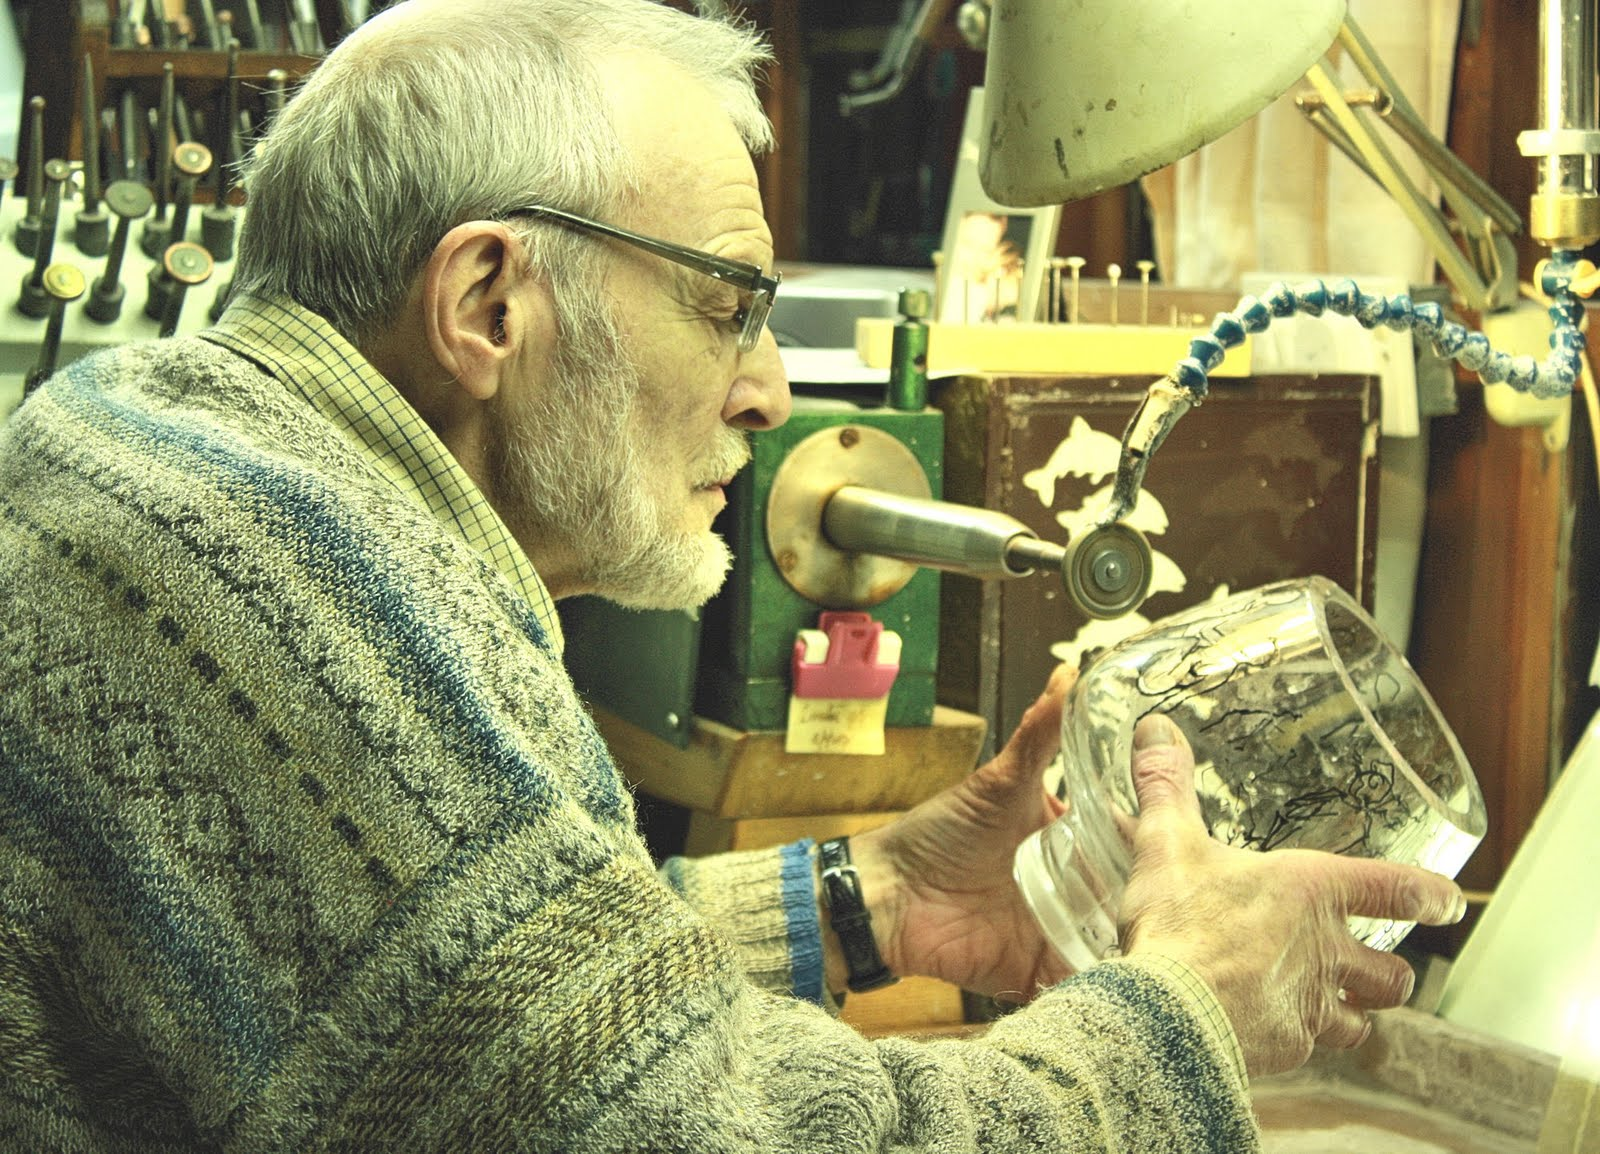 Denis Mann has engraved the coveted Mastermind trophy since 1971, recently etching his 48th engravement onto the famed award